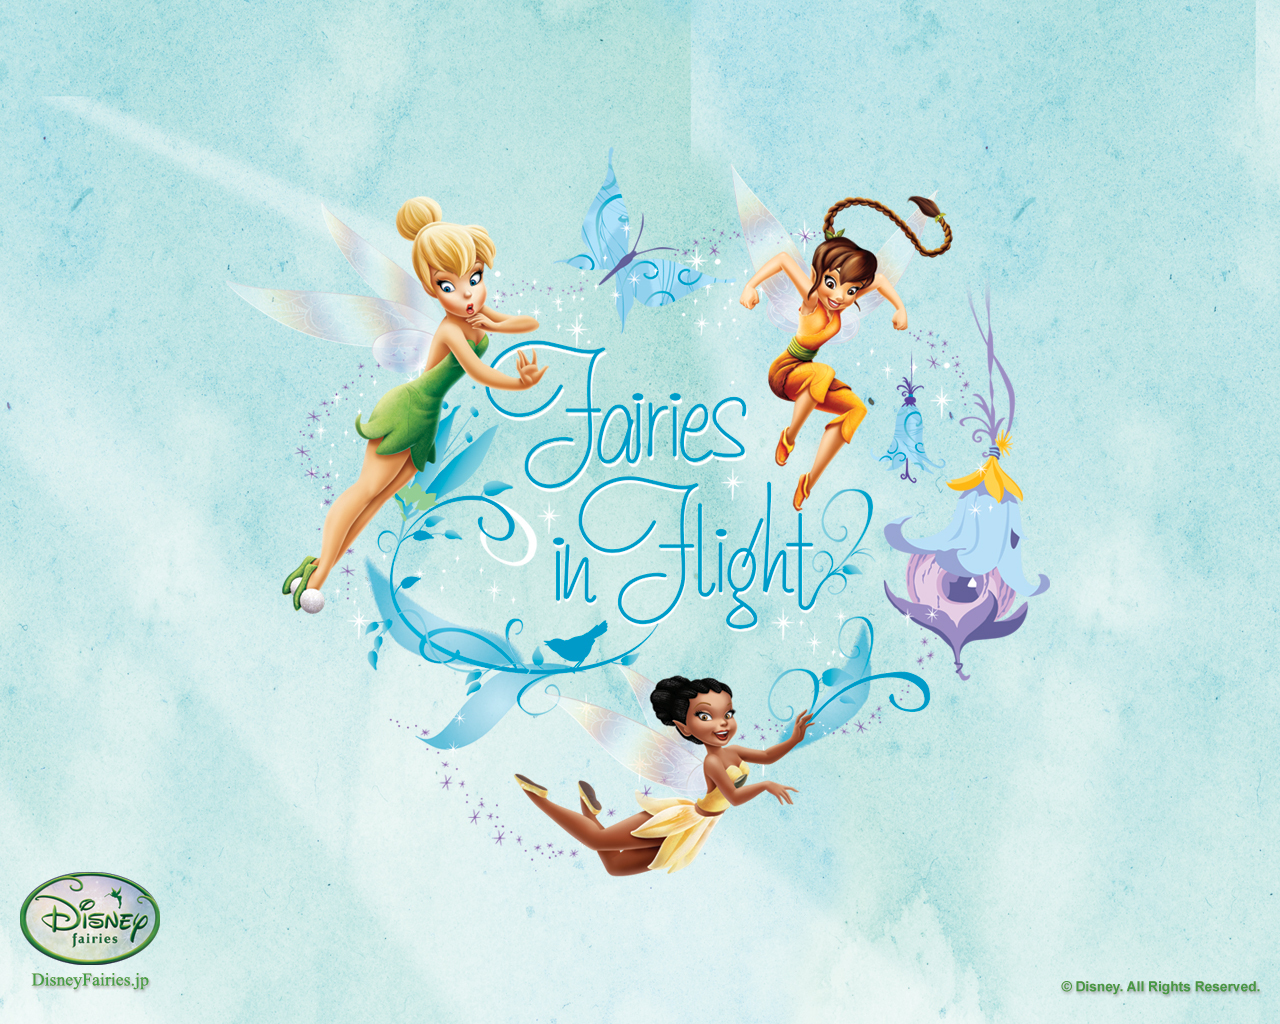 disney fairies images - photo #12